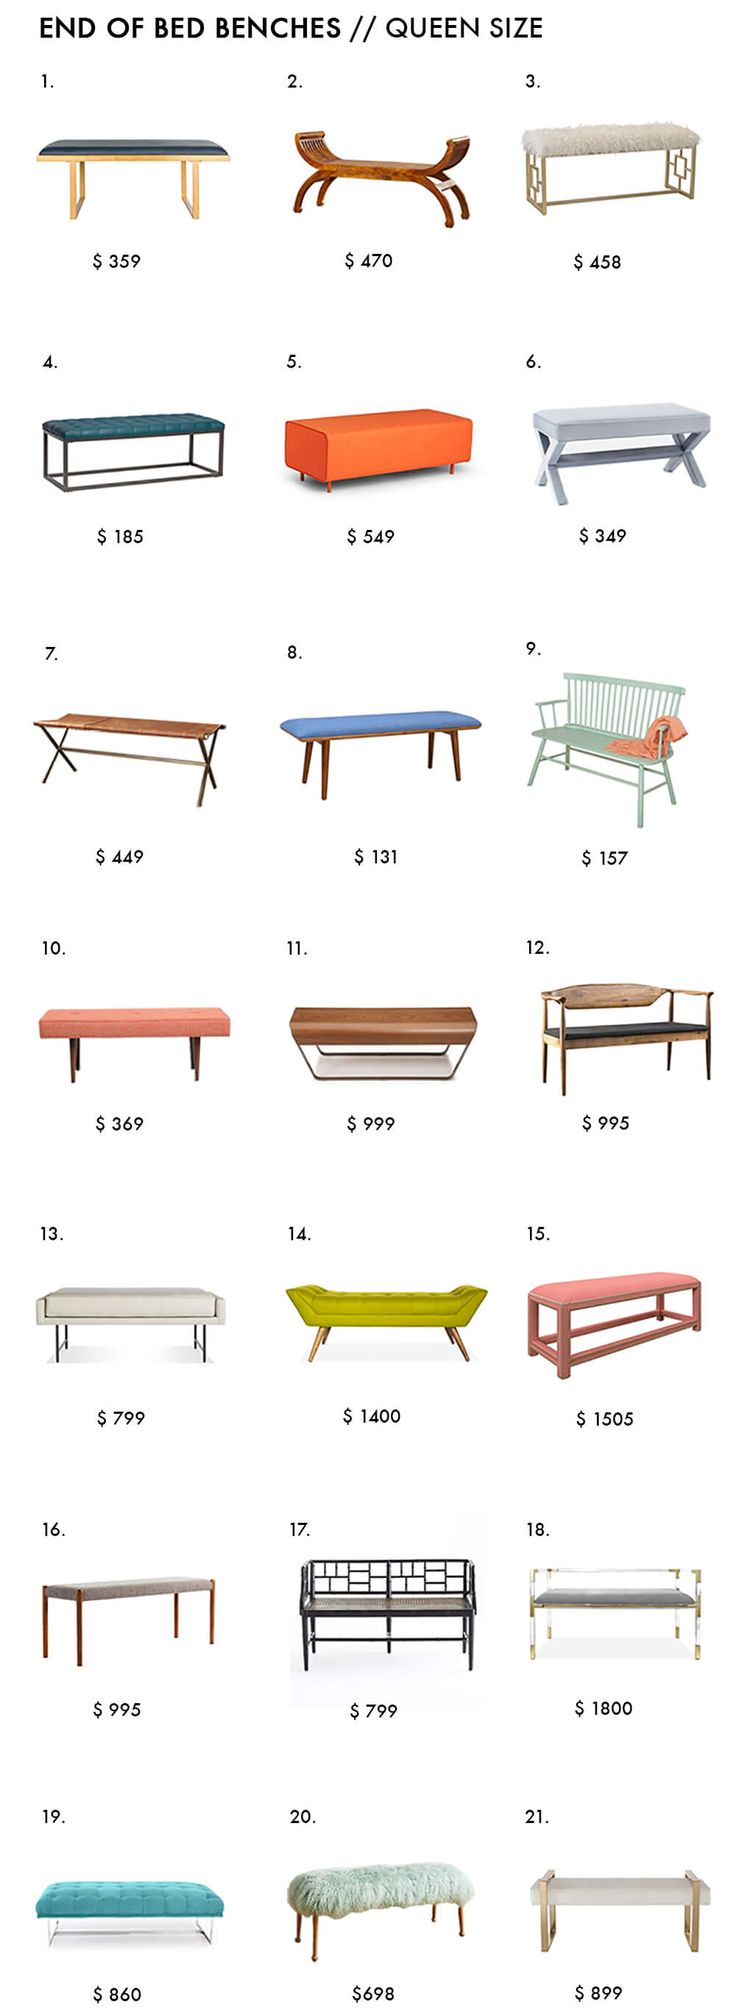 25 best ideas about Bedroom Benches on Pinterest  Bed bench End